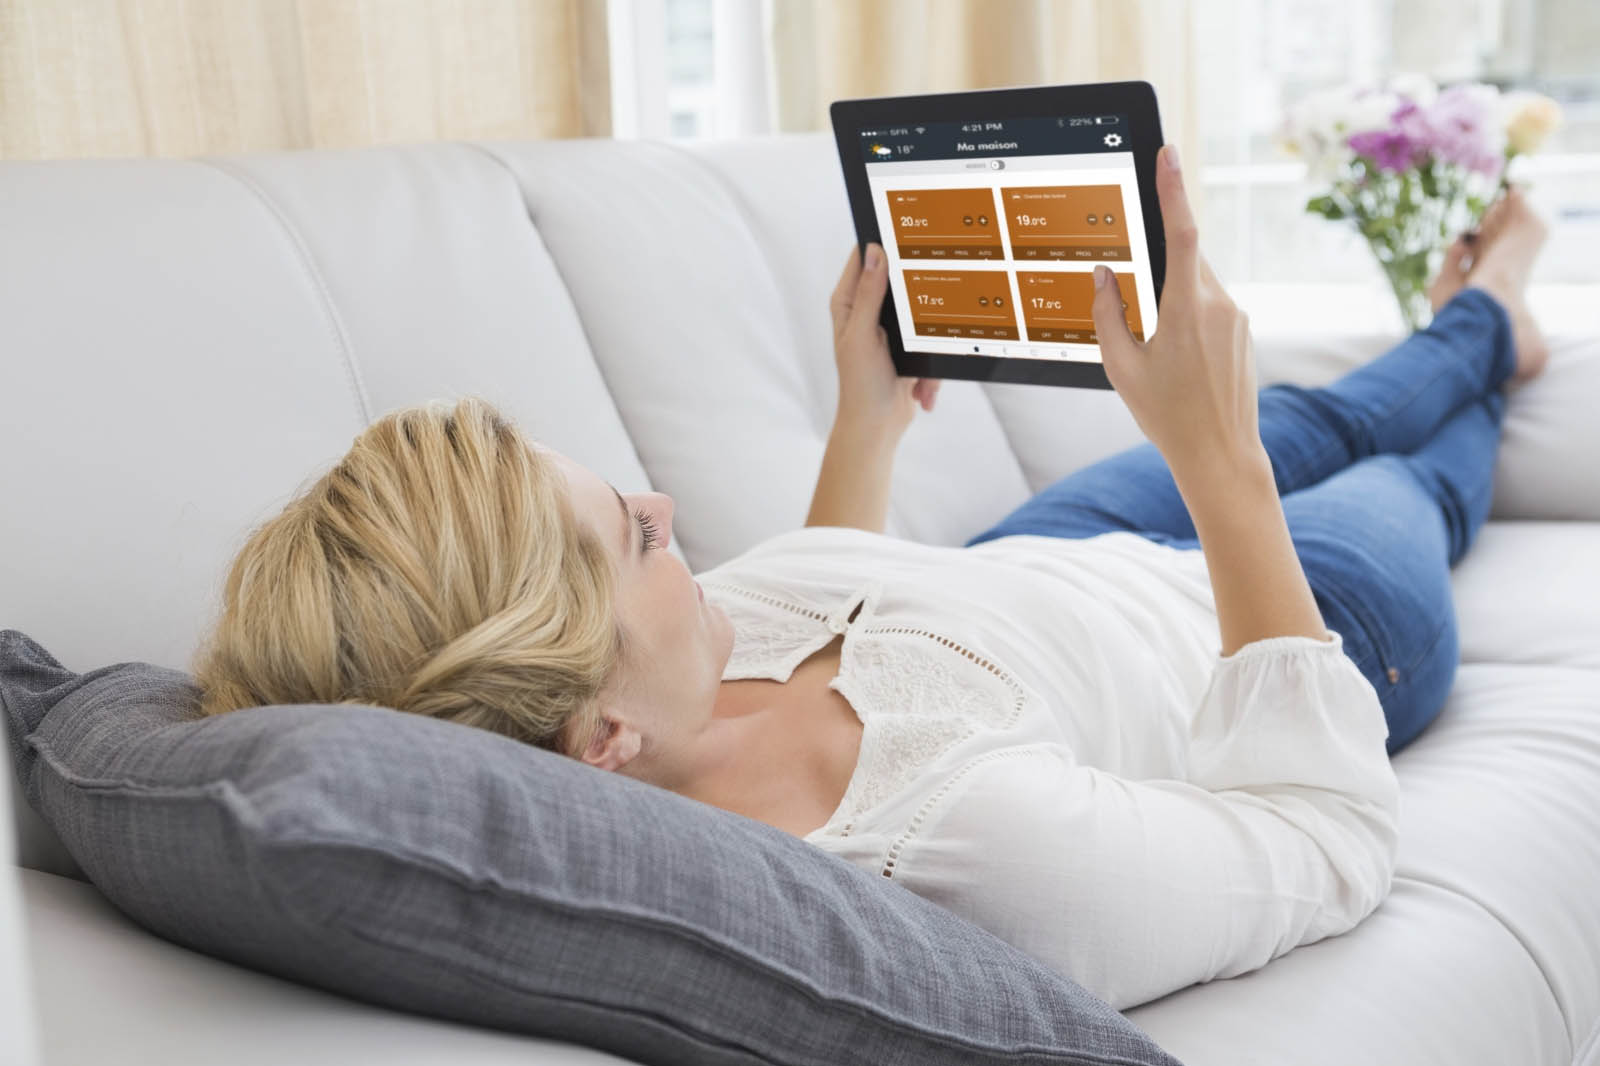 A woman relaxing with an electric heating smart controller app on a tablet